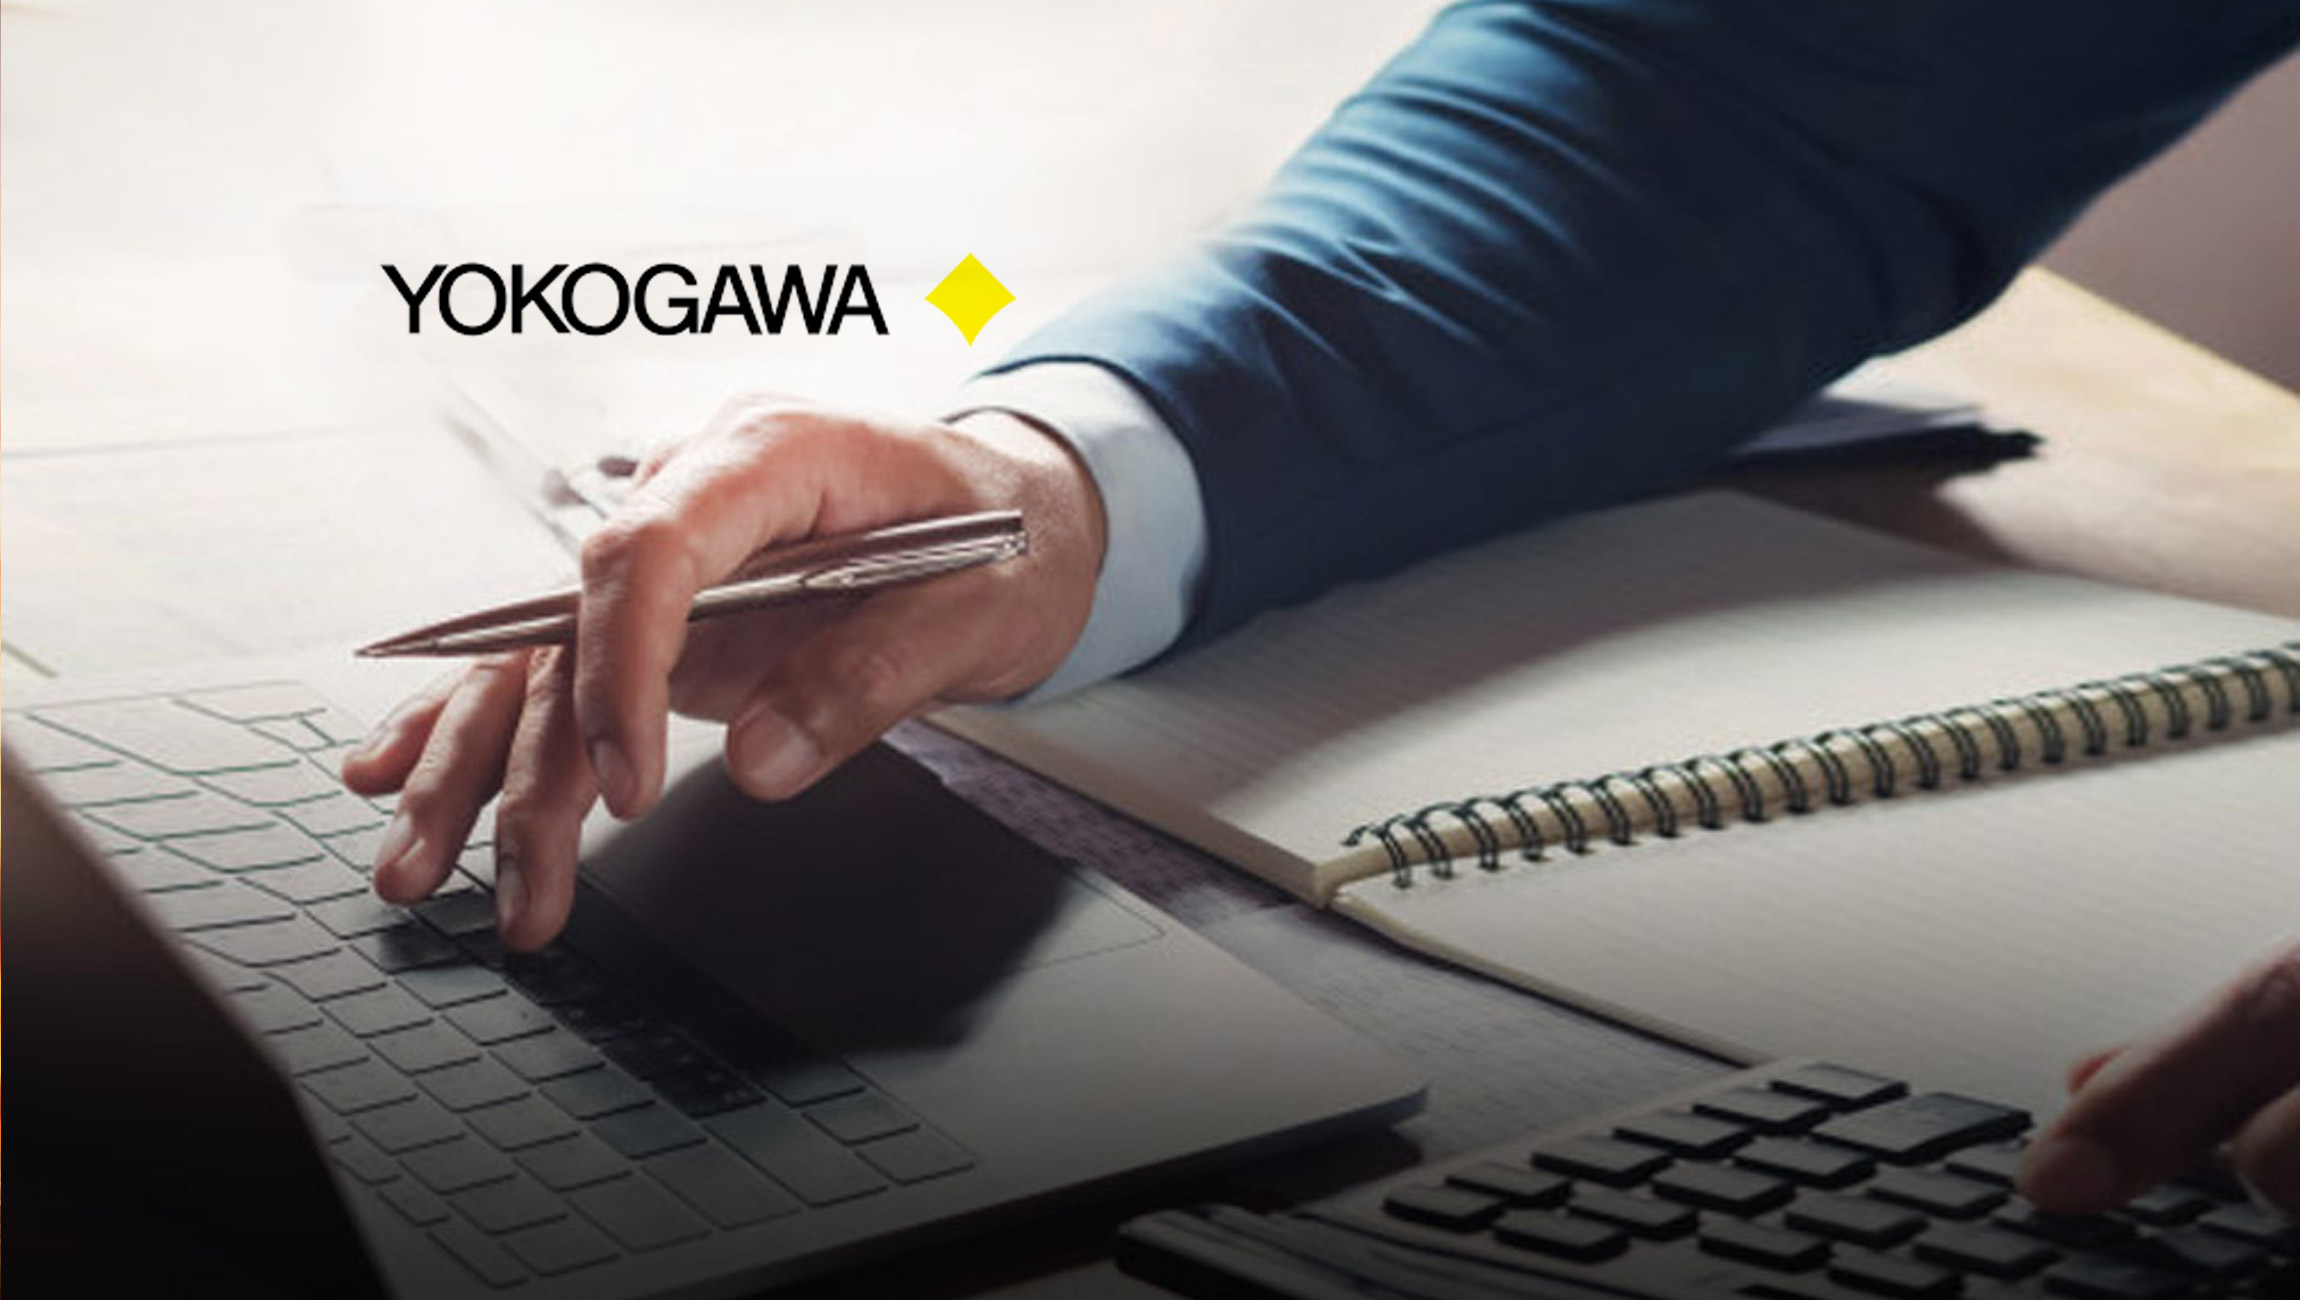 Yokogawa Opens Registration for Y NOW 2021 Virtual Event Focused on Autonomous Operations